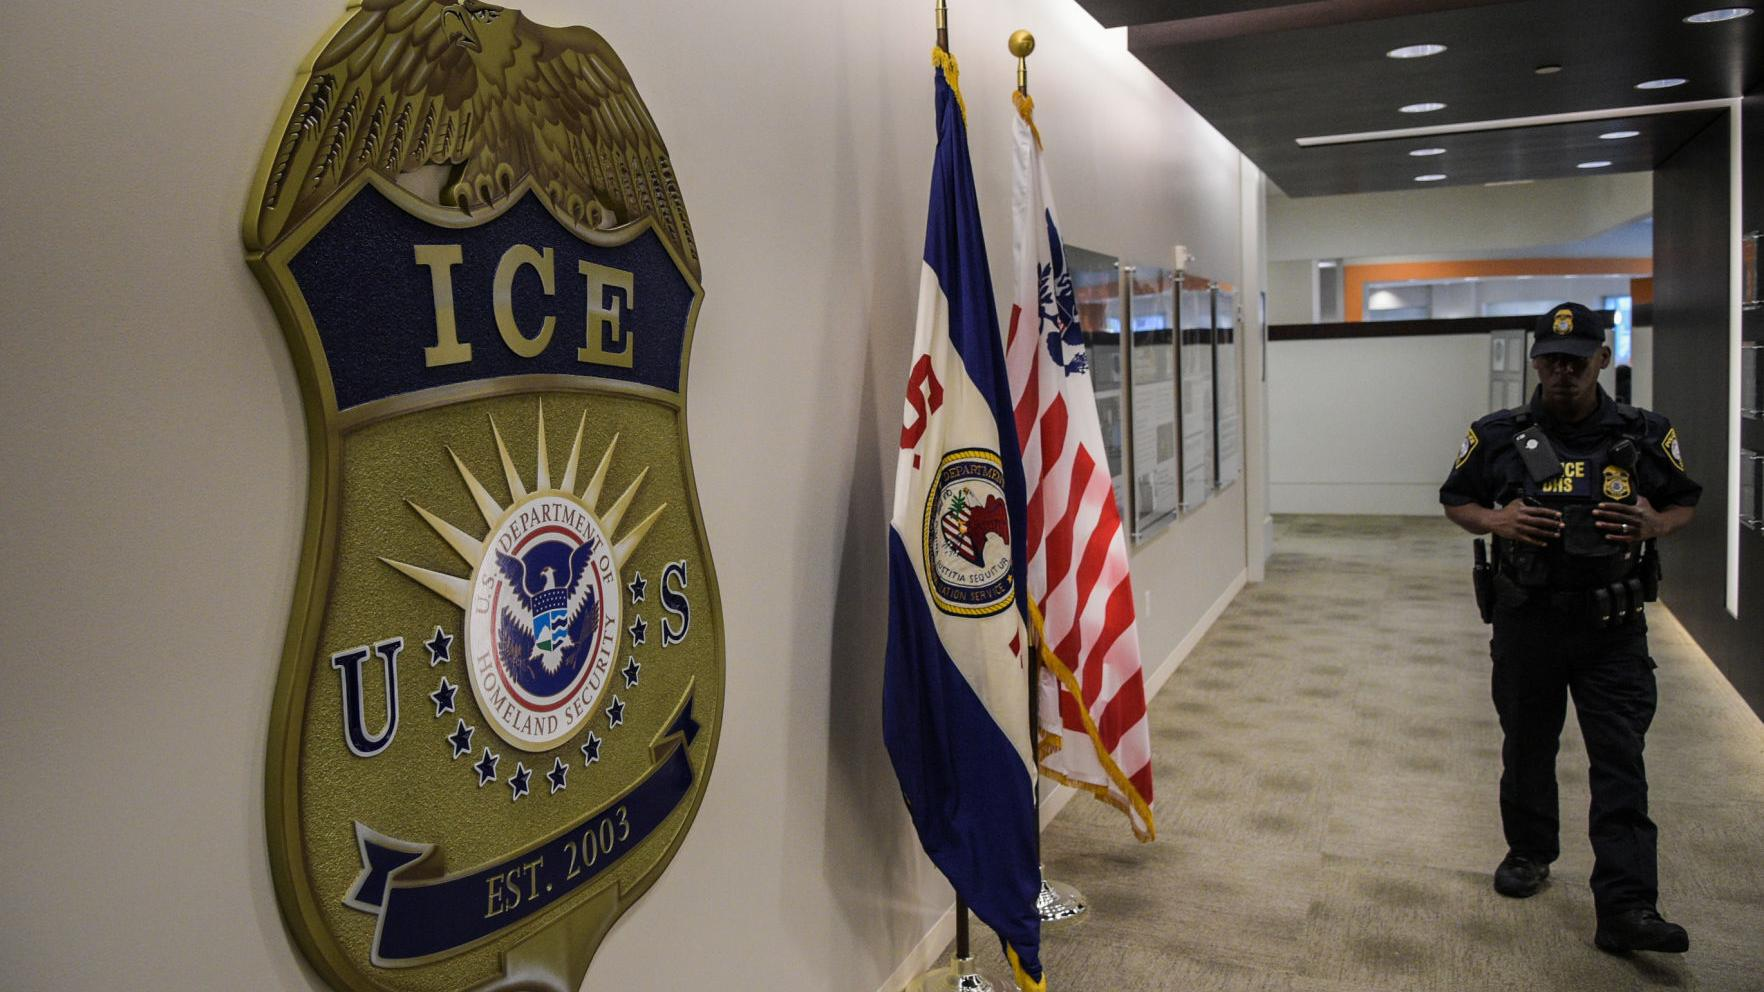 U.S. plans family deportations, including a 4-year-old girl with broken arm requiring surgery